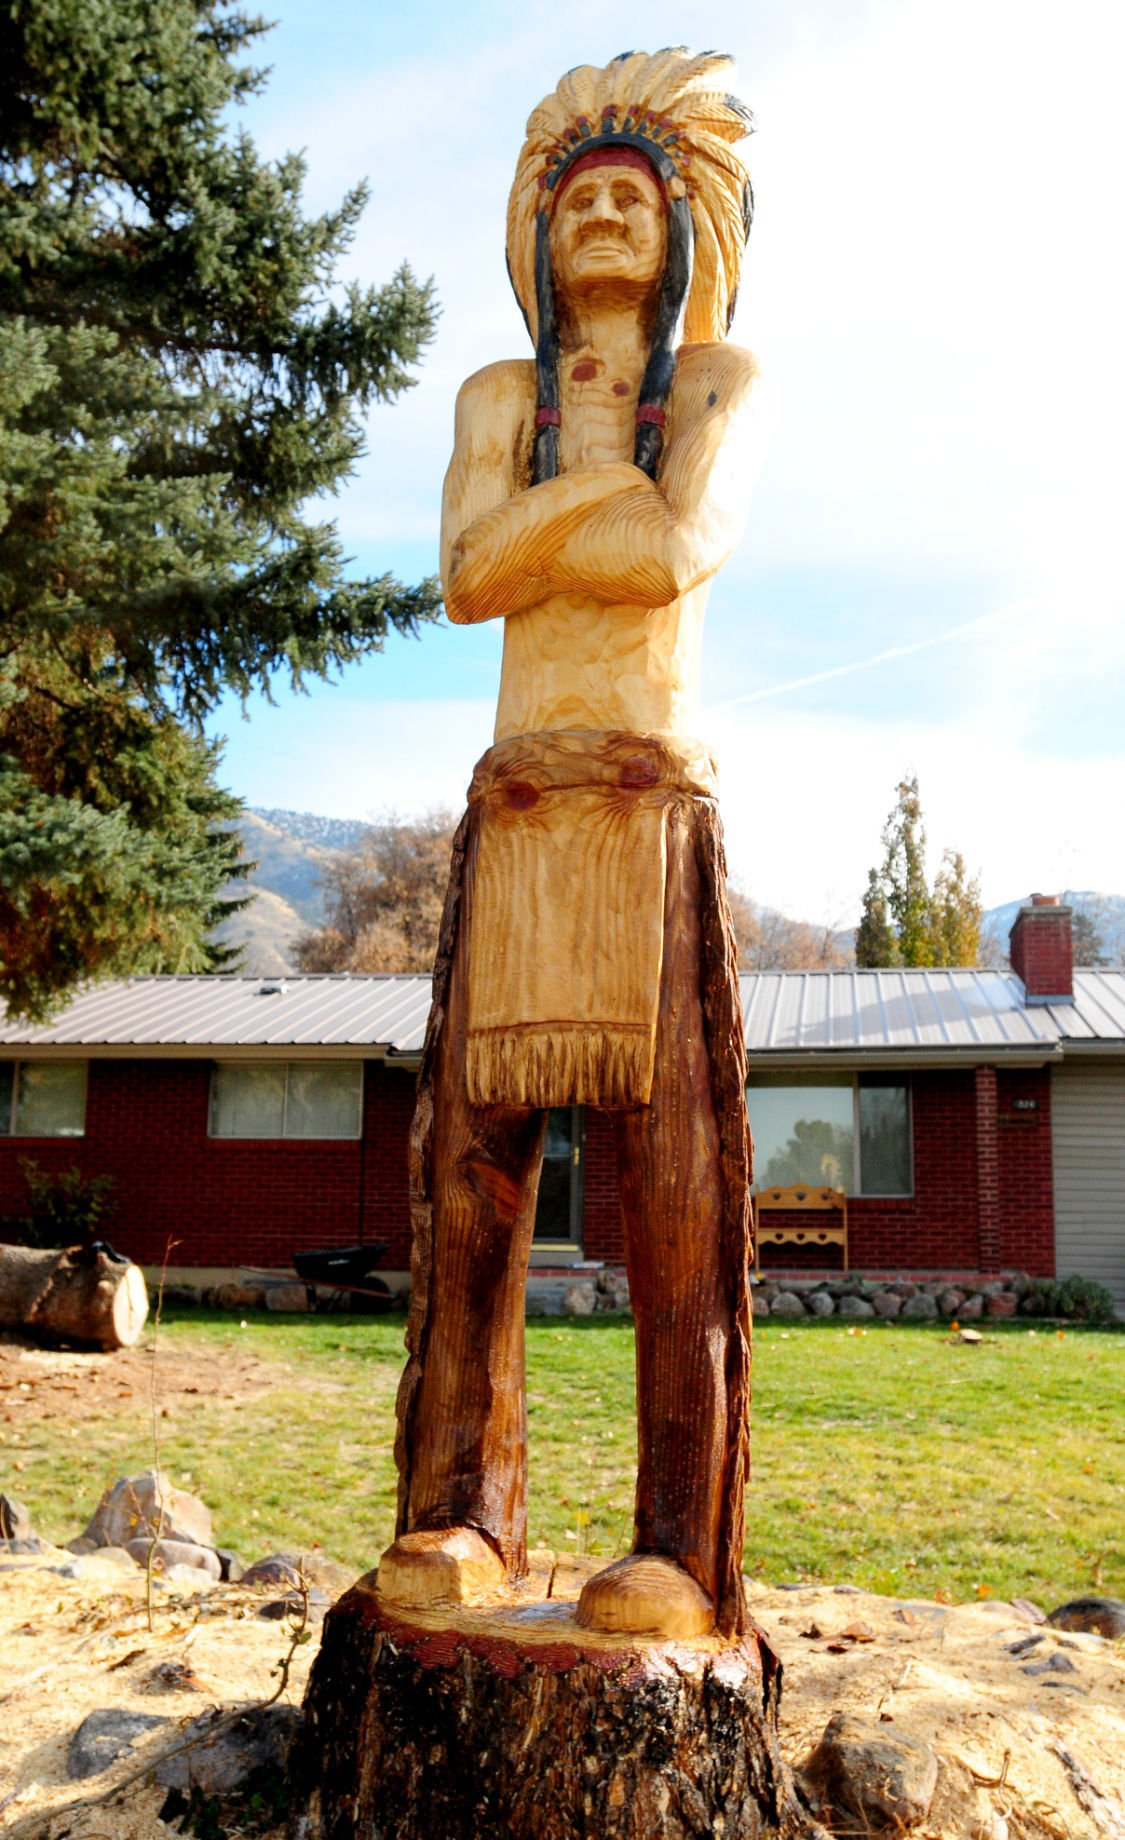 Idaho woman uses chainsaw to create life size sculptures